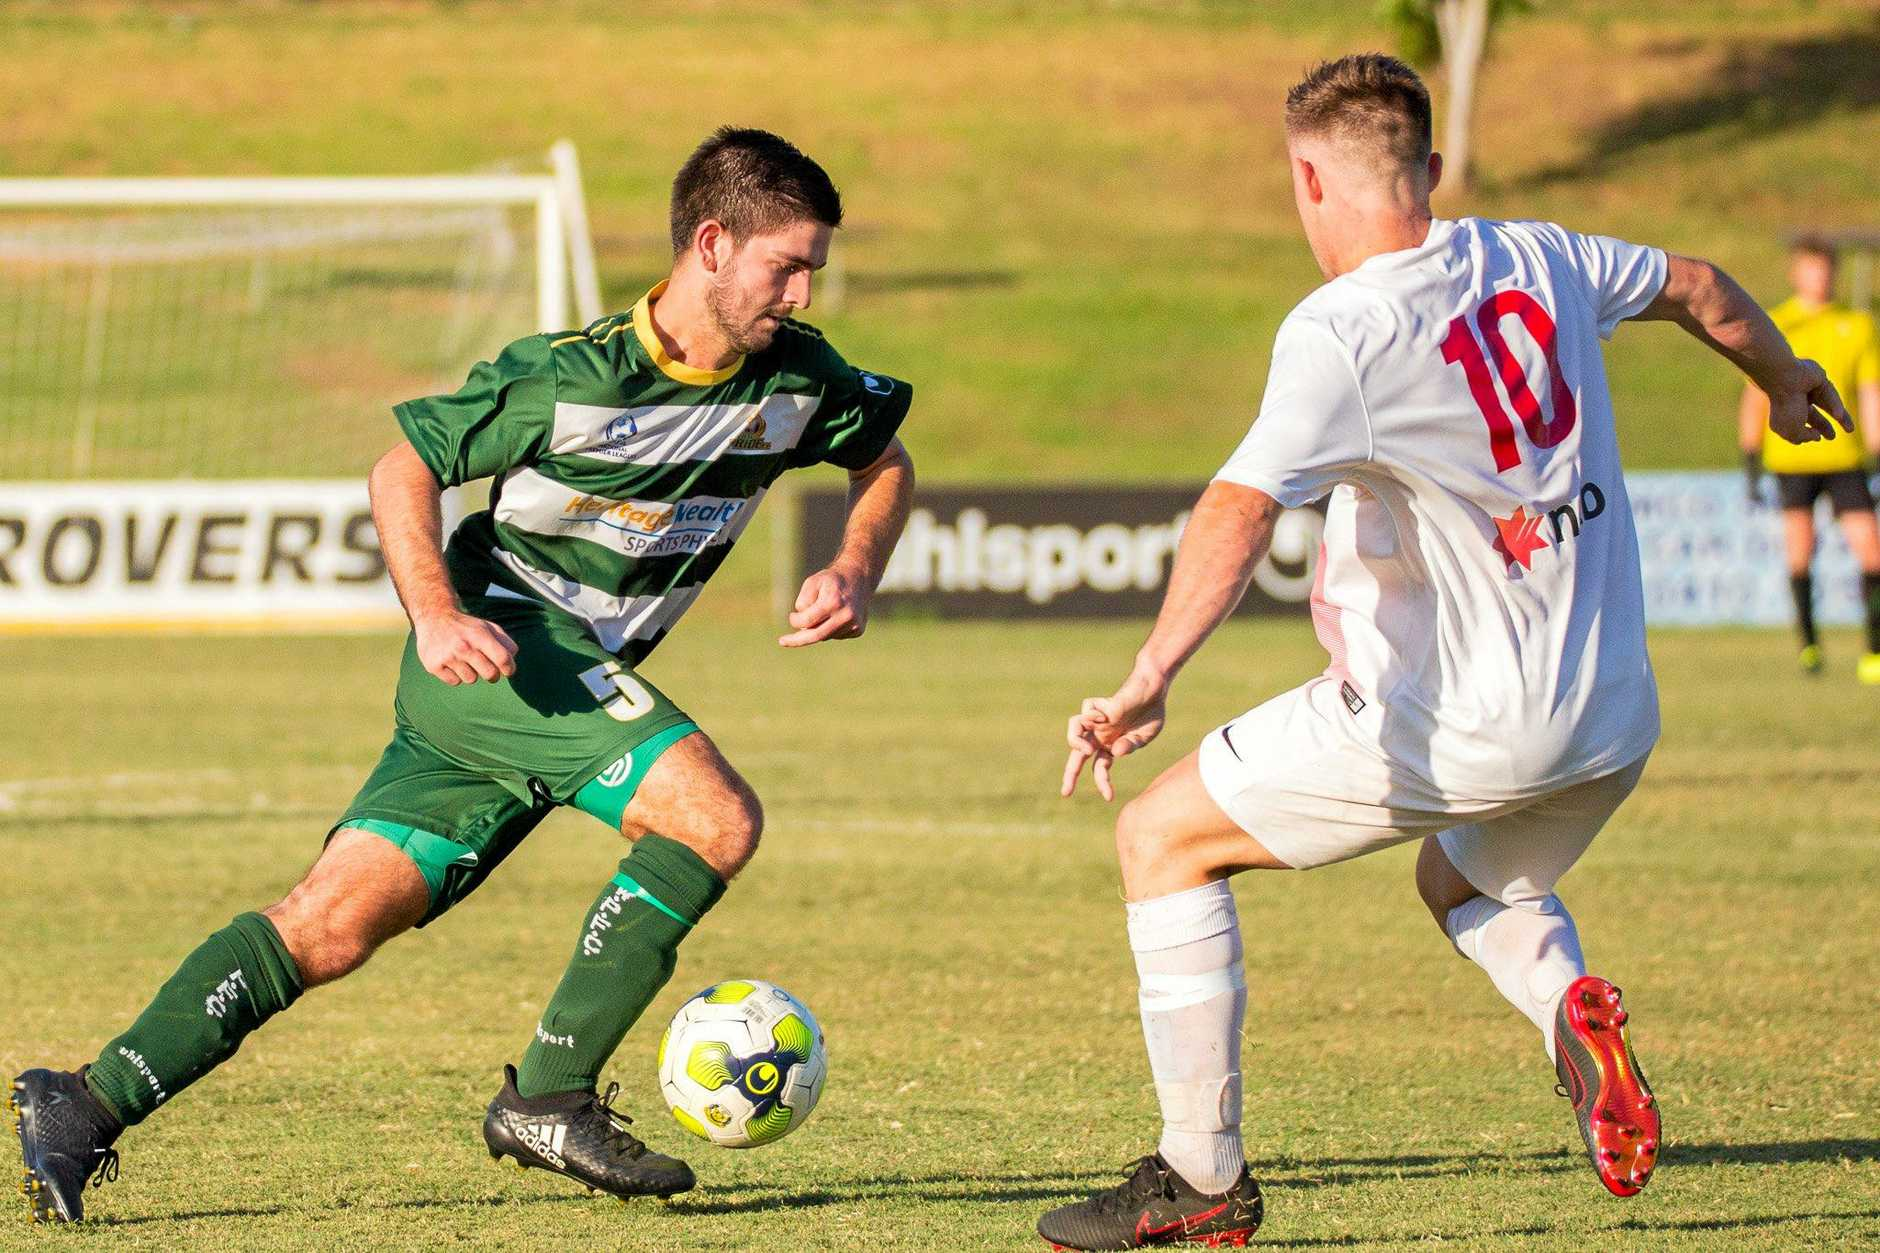 Western Pride defender and stand-in captain Cam Crestani returns to strengthen his team for Saturday's NPL Queensland match at the Briggs Road Sporting Complex.